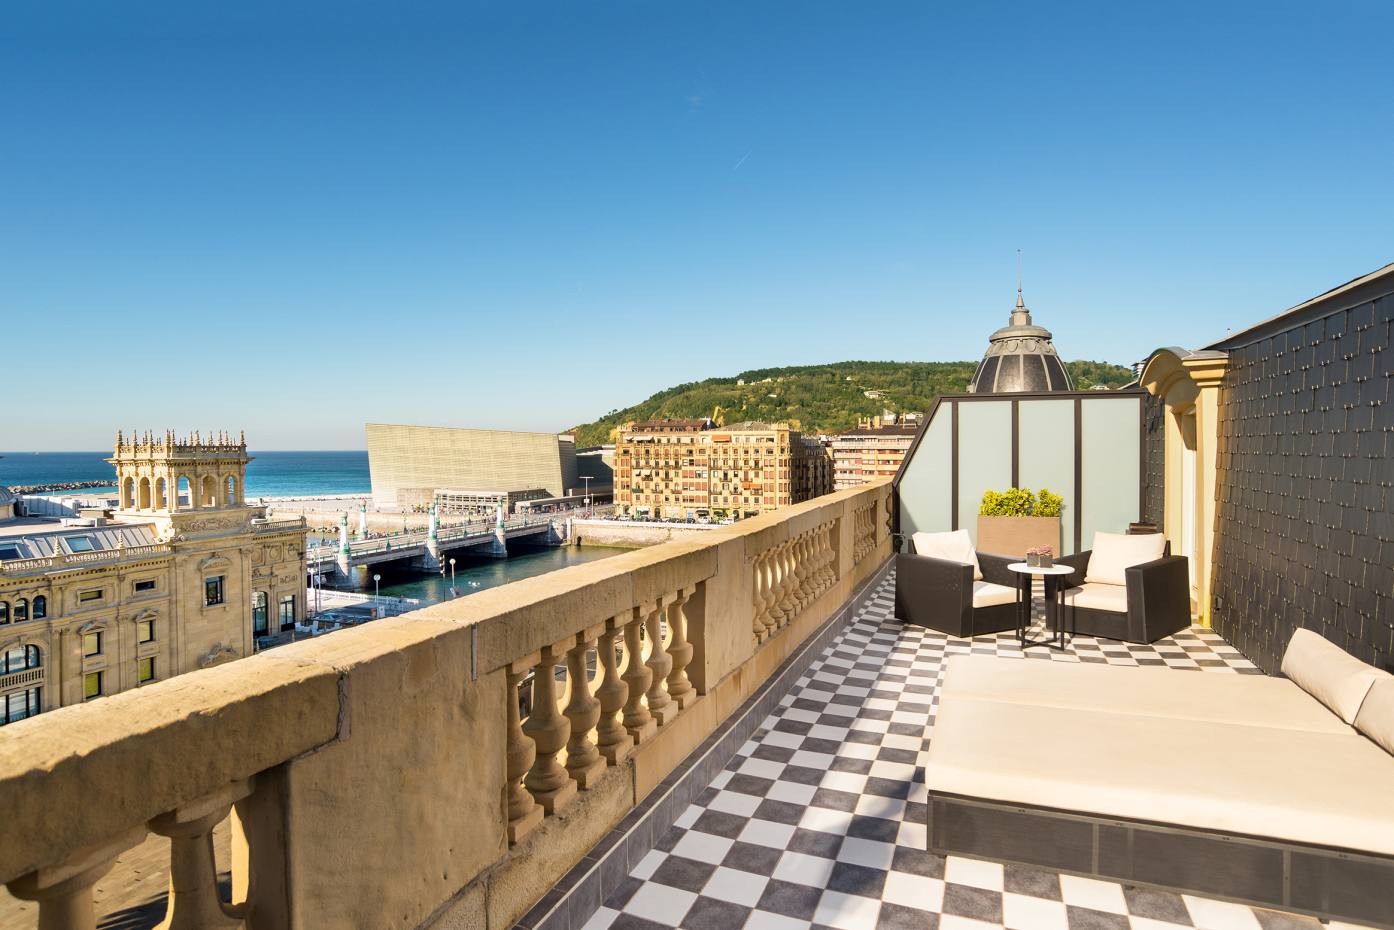 A terrace suite at Hotel María Cristina in San Sebastián, with views of the Zurriola bridge and the Kursaal building